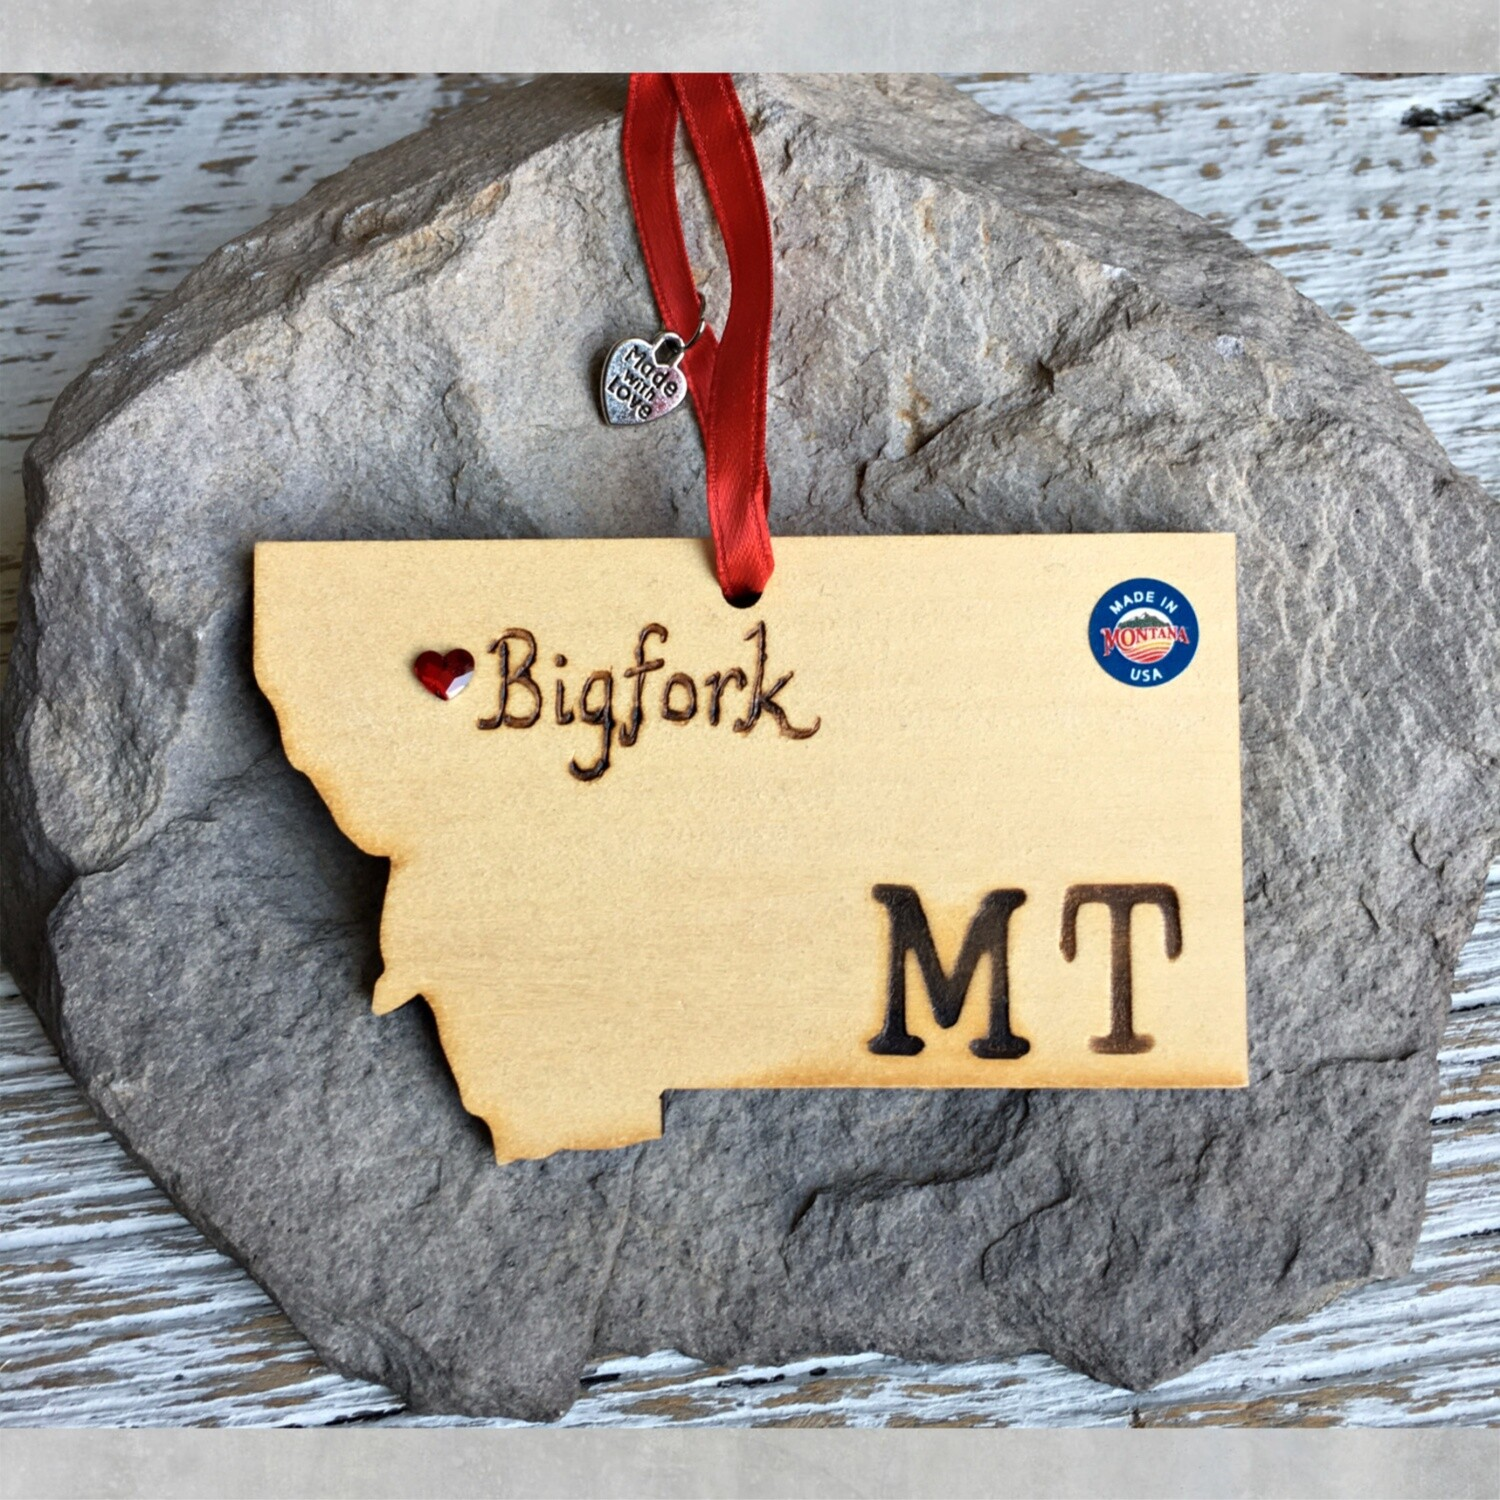 40-20 Bigfork MT Ornament